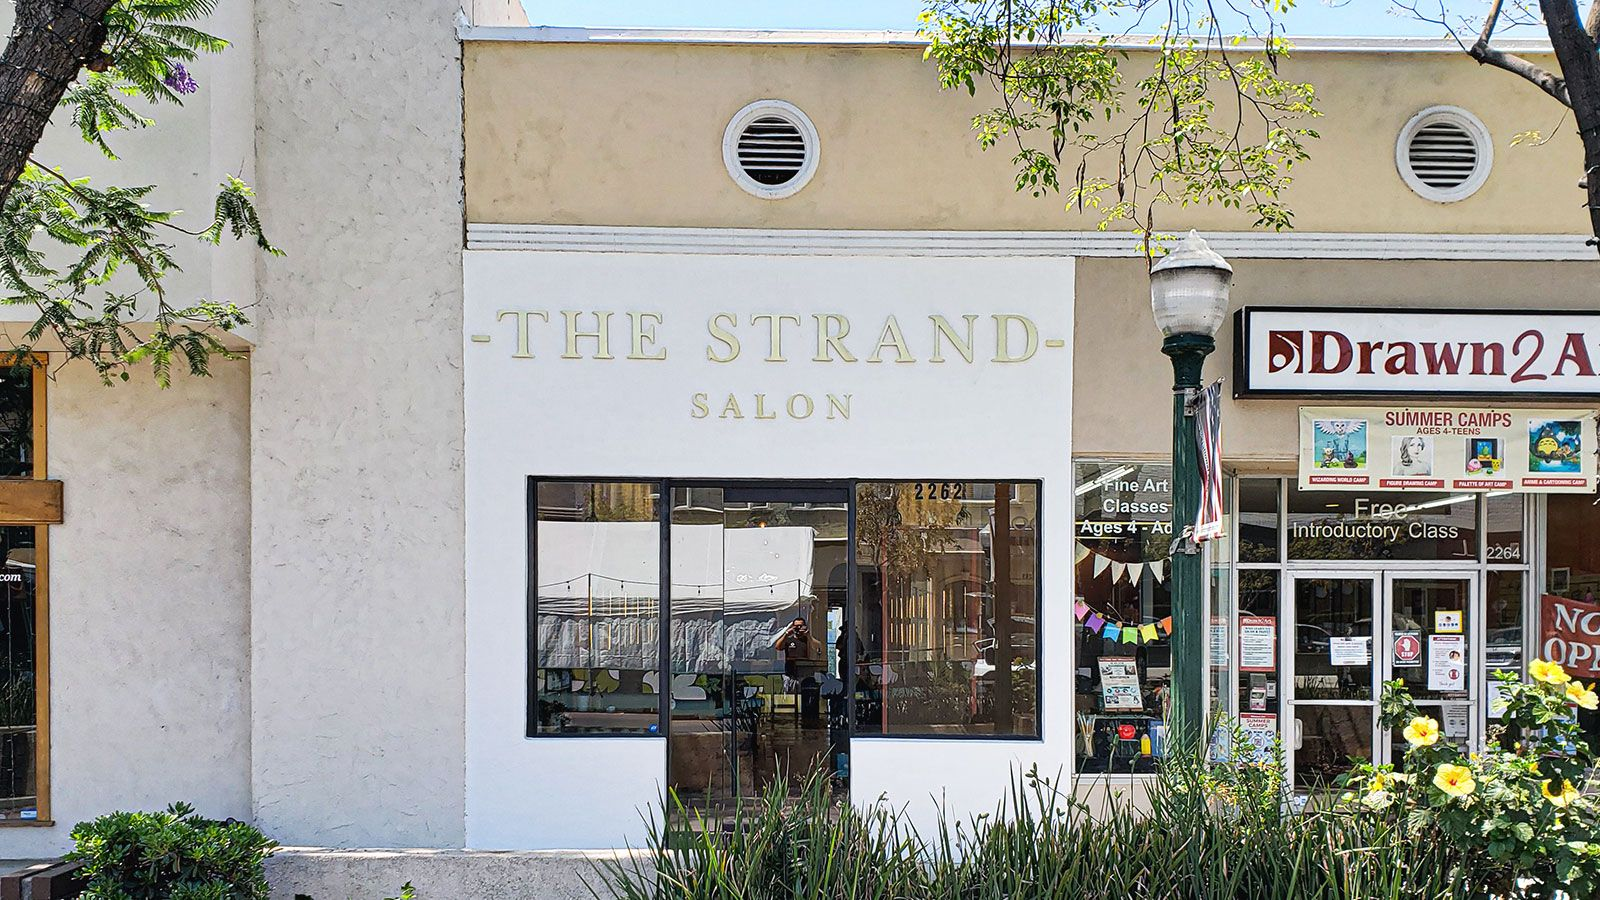 the stand salon building sign